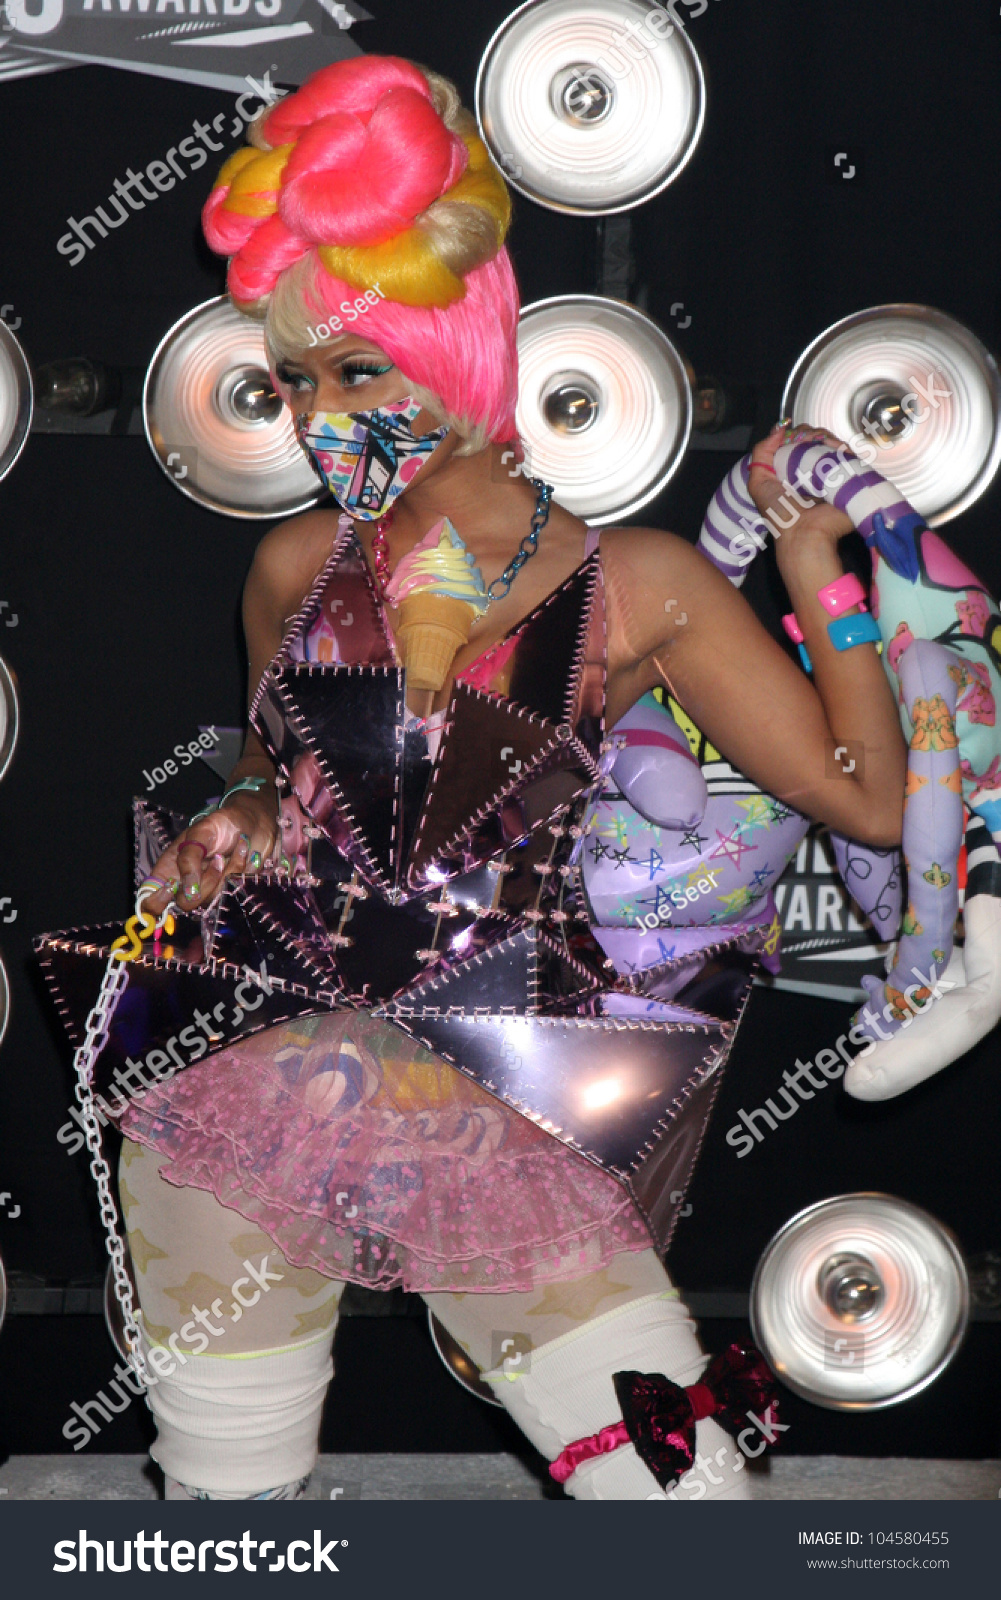 Los Angeles Aug 28 Nicki Minaj Stock Photo 104580455 ...